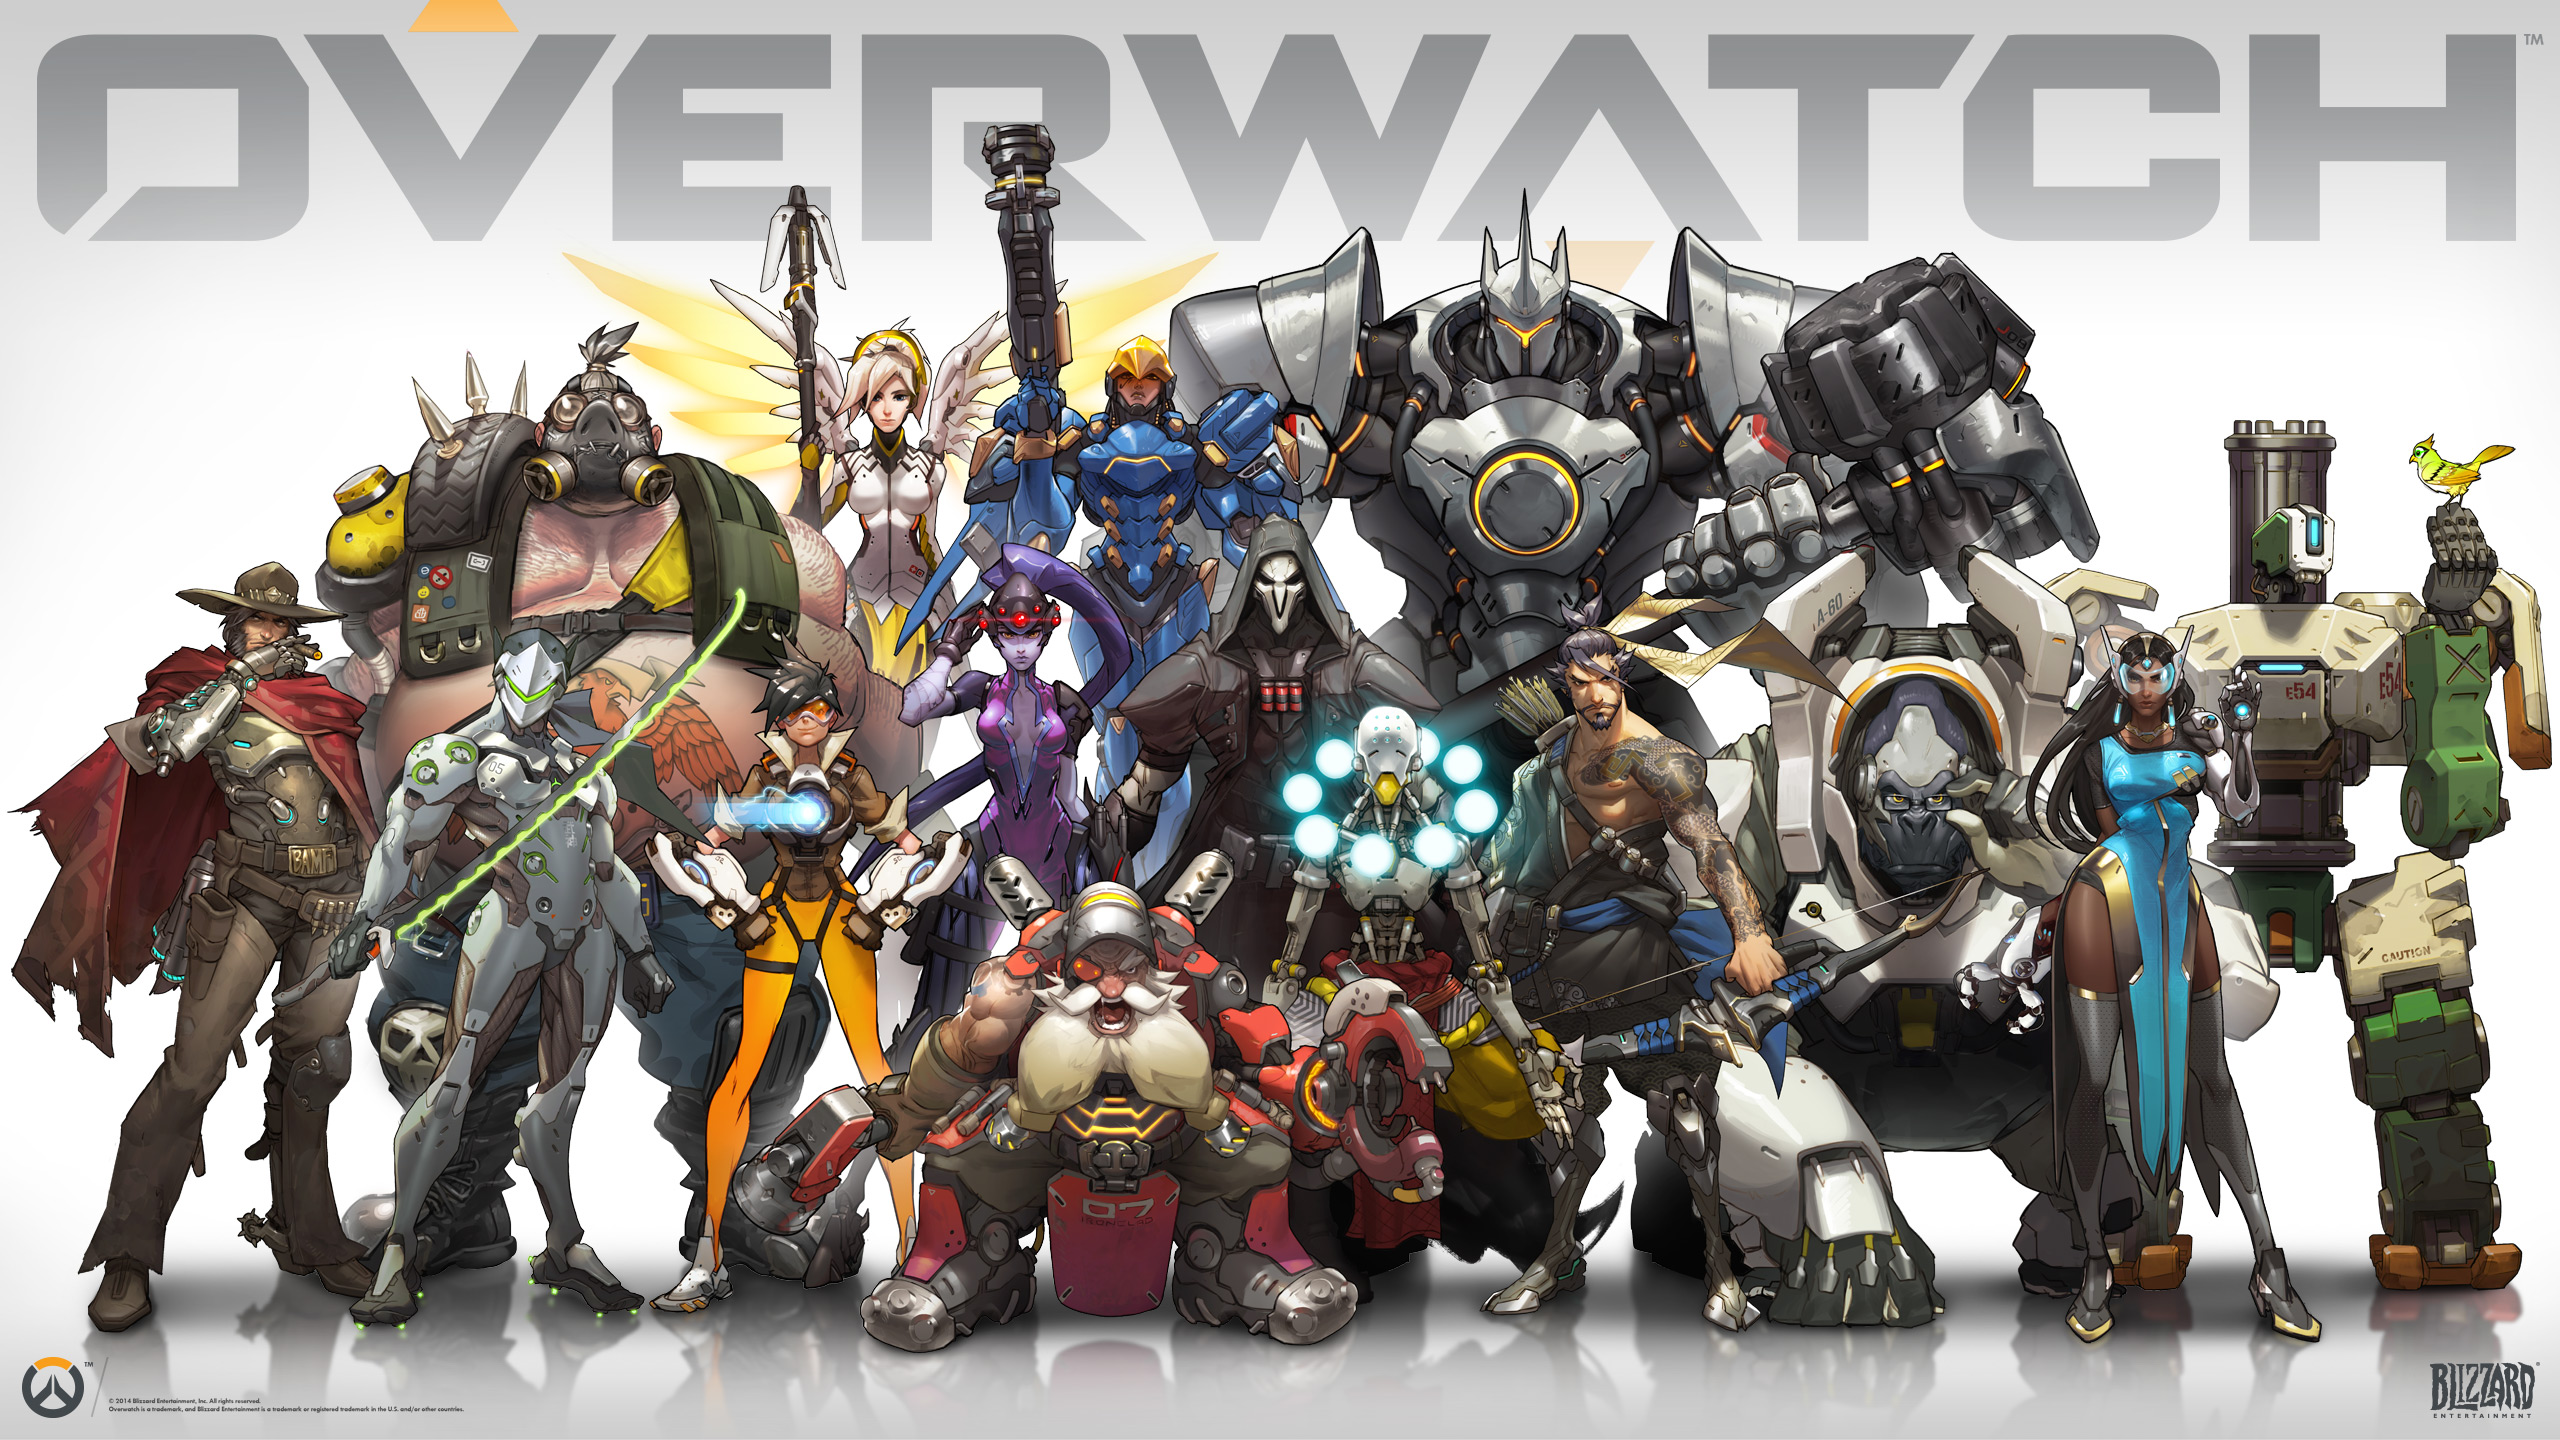 overwatch 4k widescreen desktop wallpaper 1243